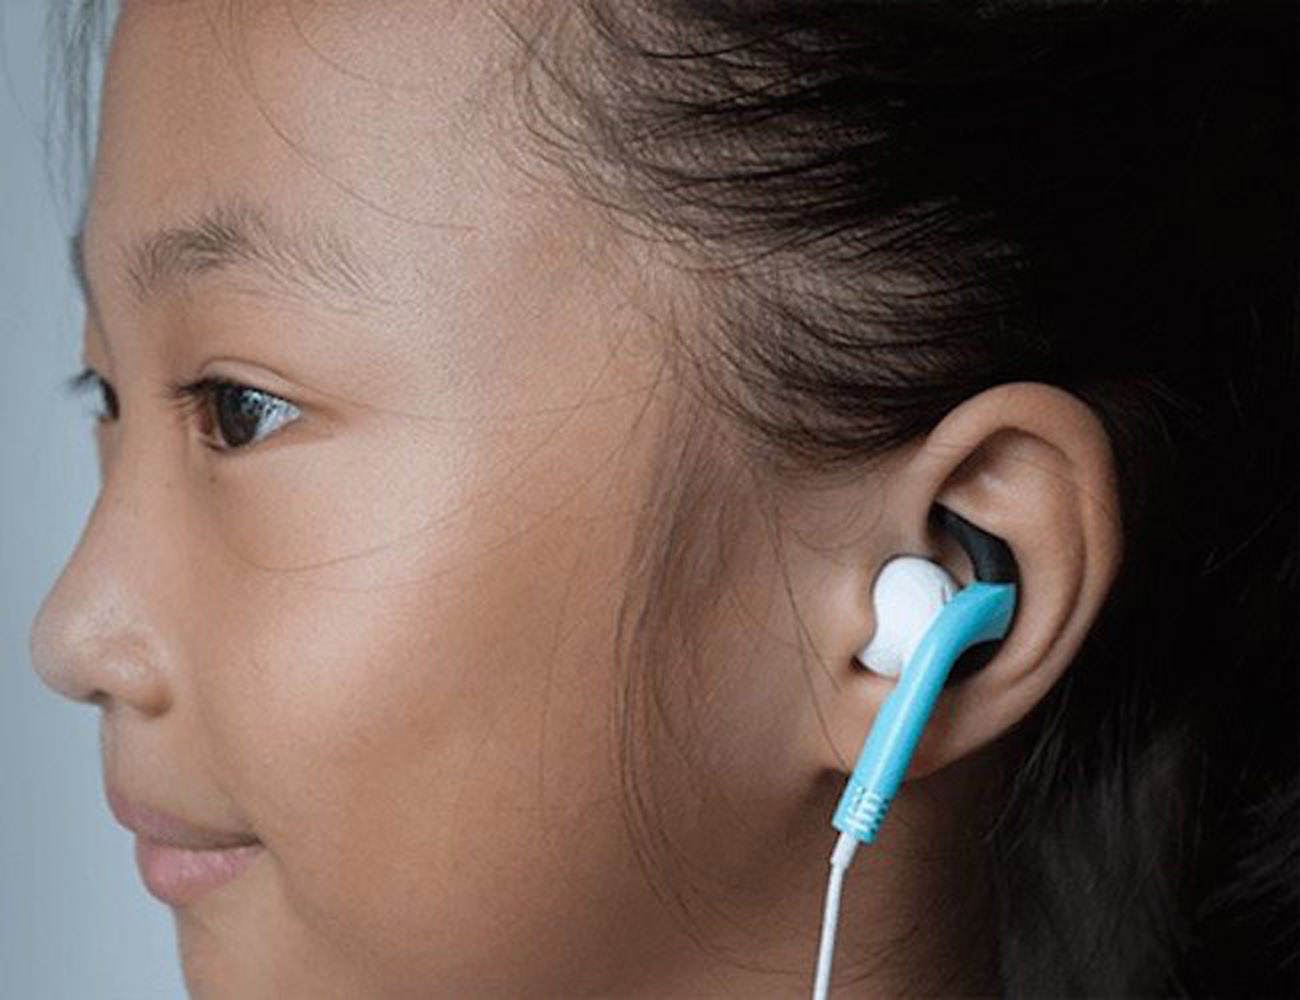 GTEAR – Stabilize Earphones on Your Ears